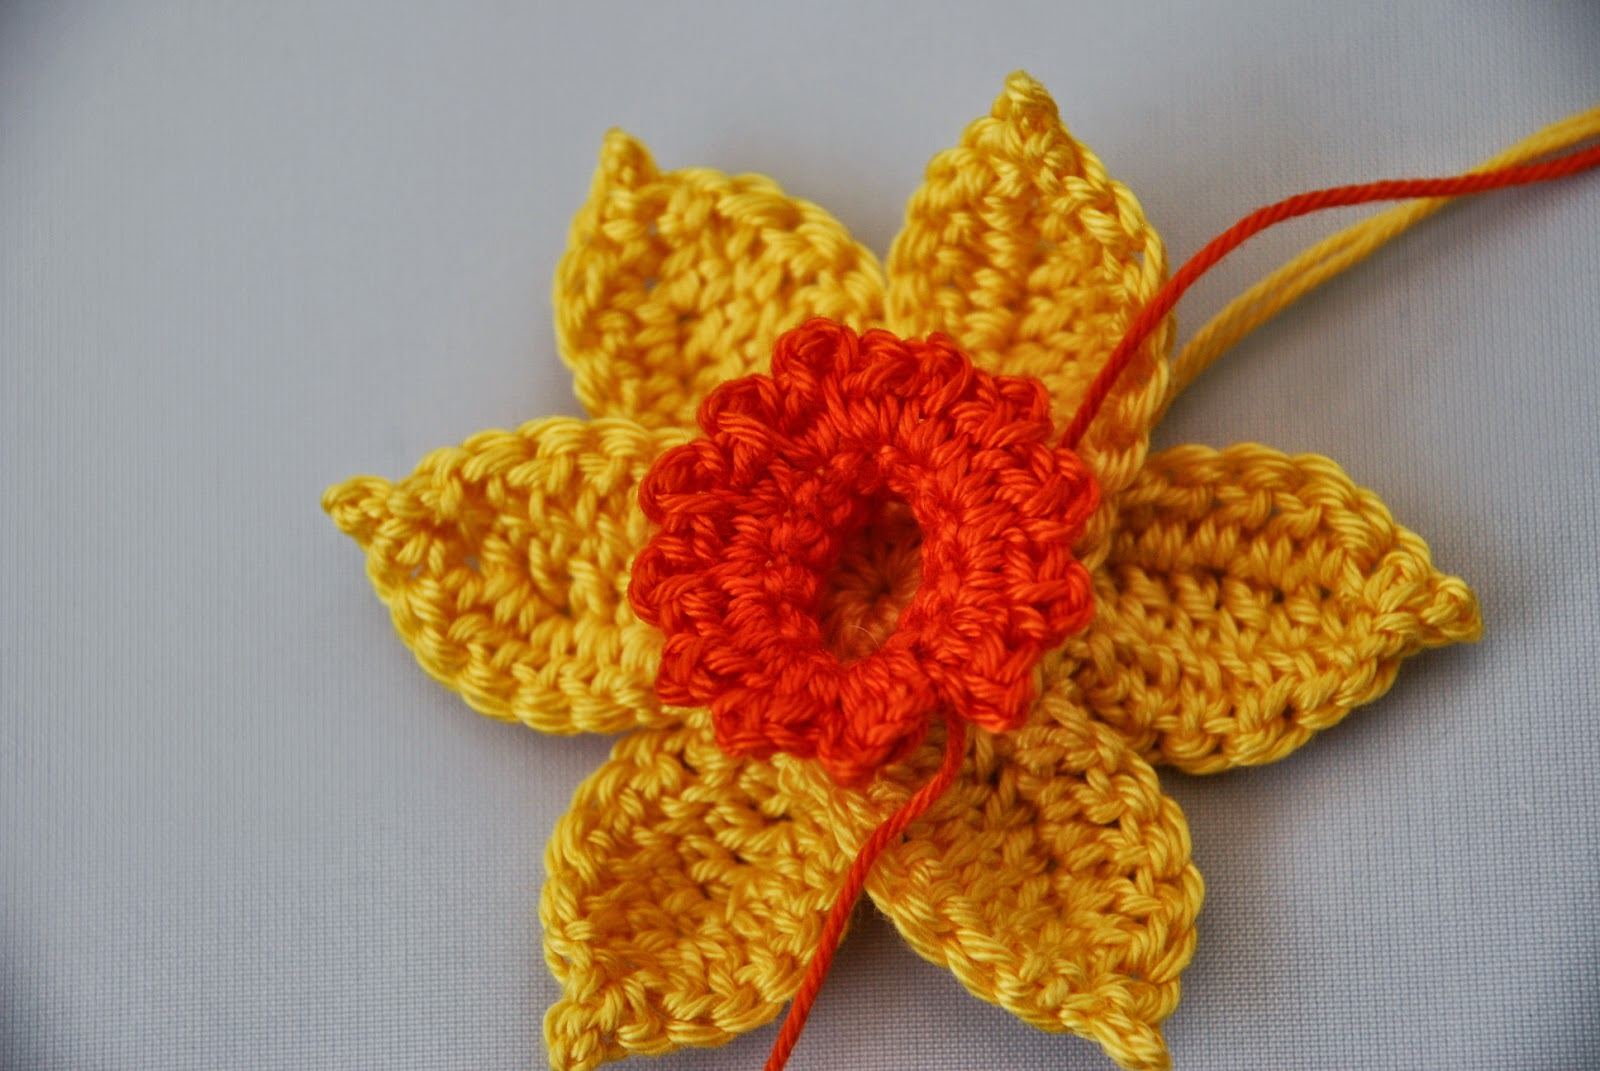 Crochet Daffodil pattern and tutorial: image of frilly edge complete